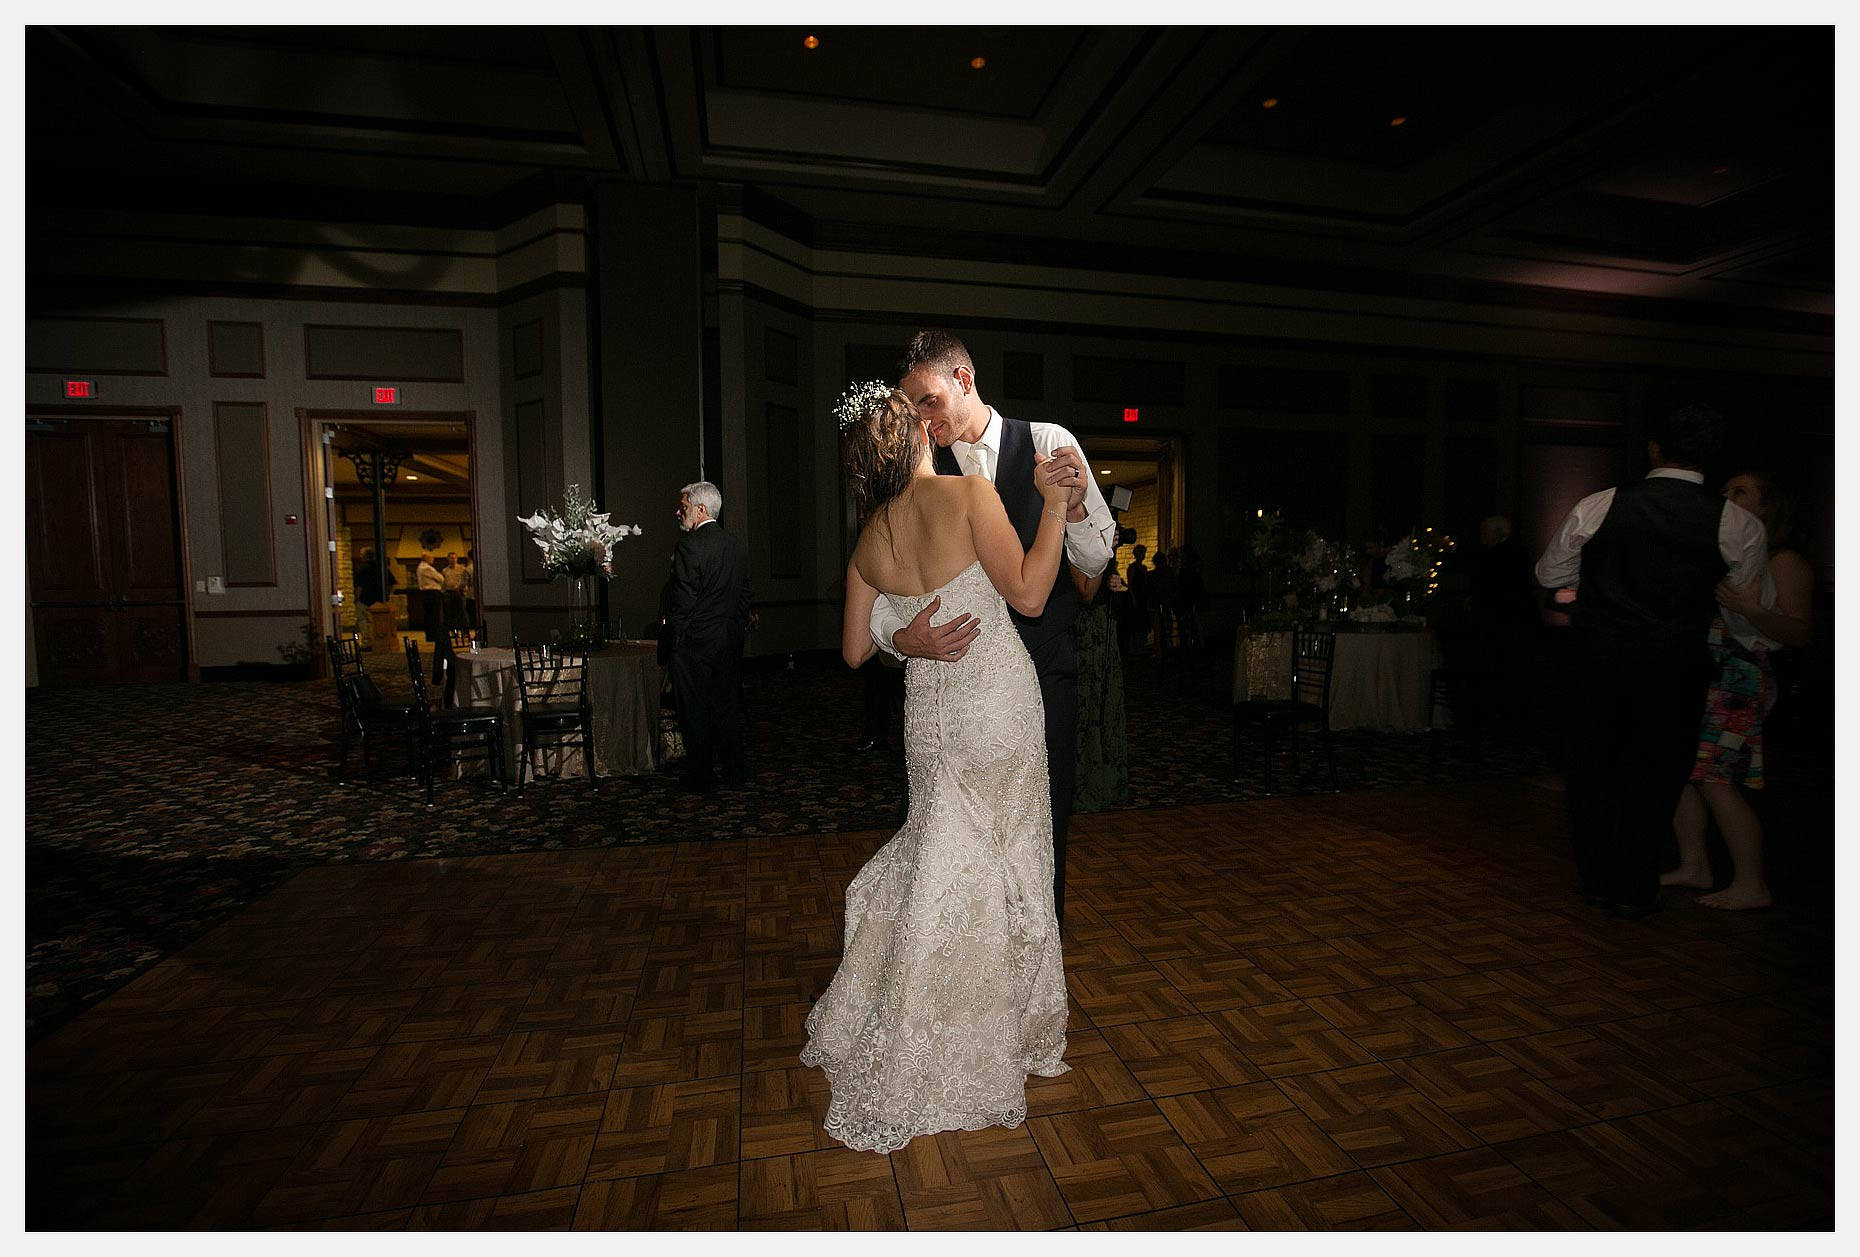 Madison-Carver-Wedding-by-Stephen-Masker-Photography-0183